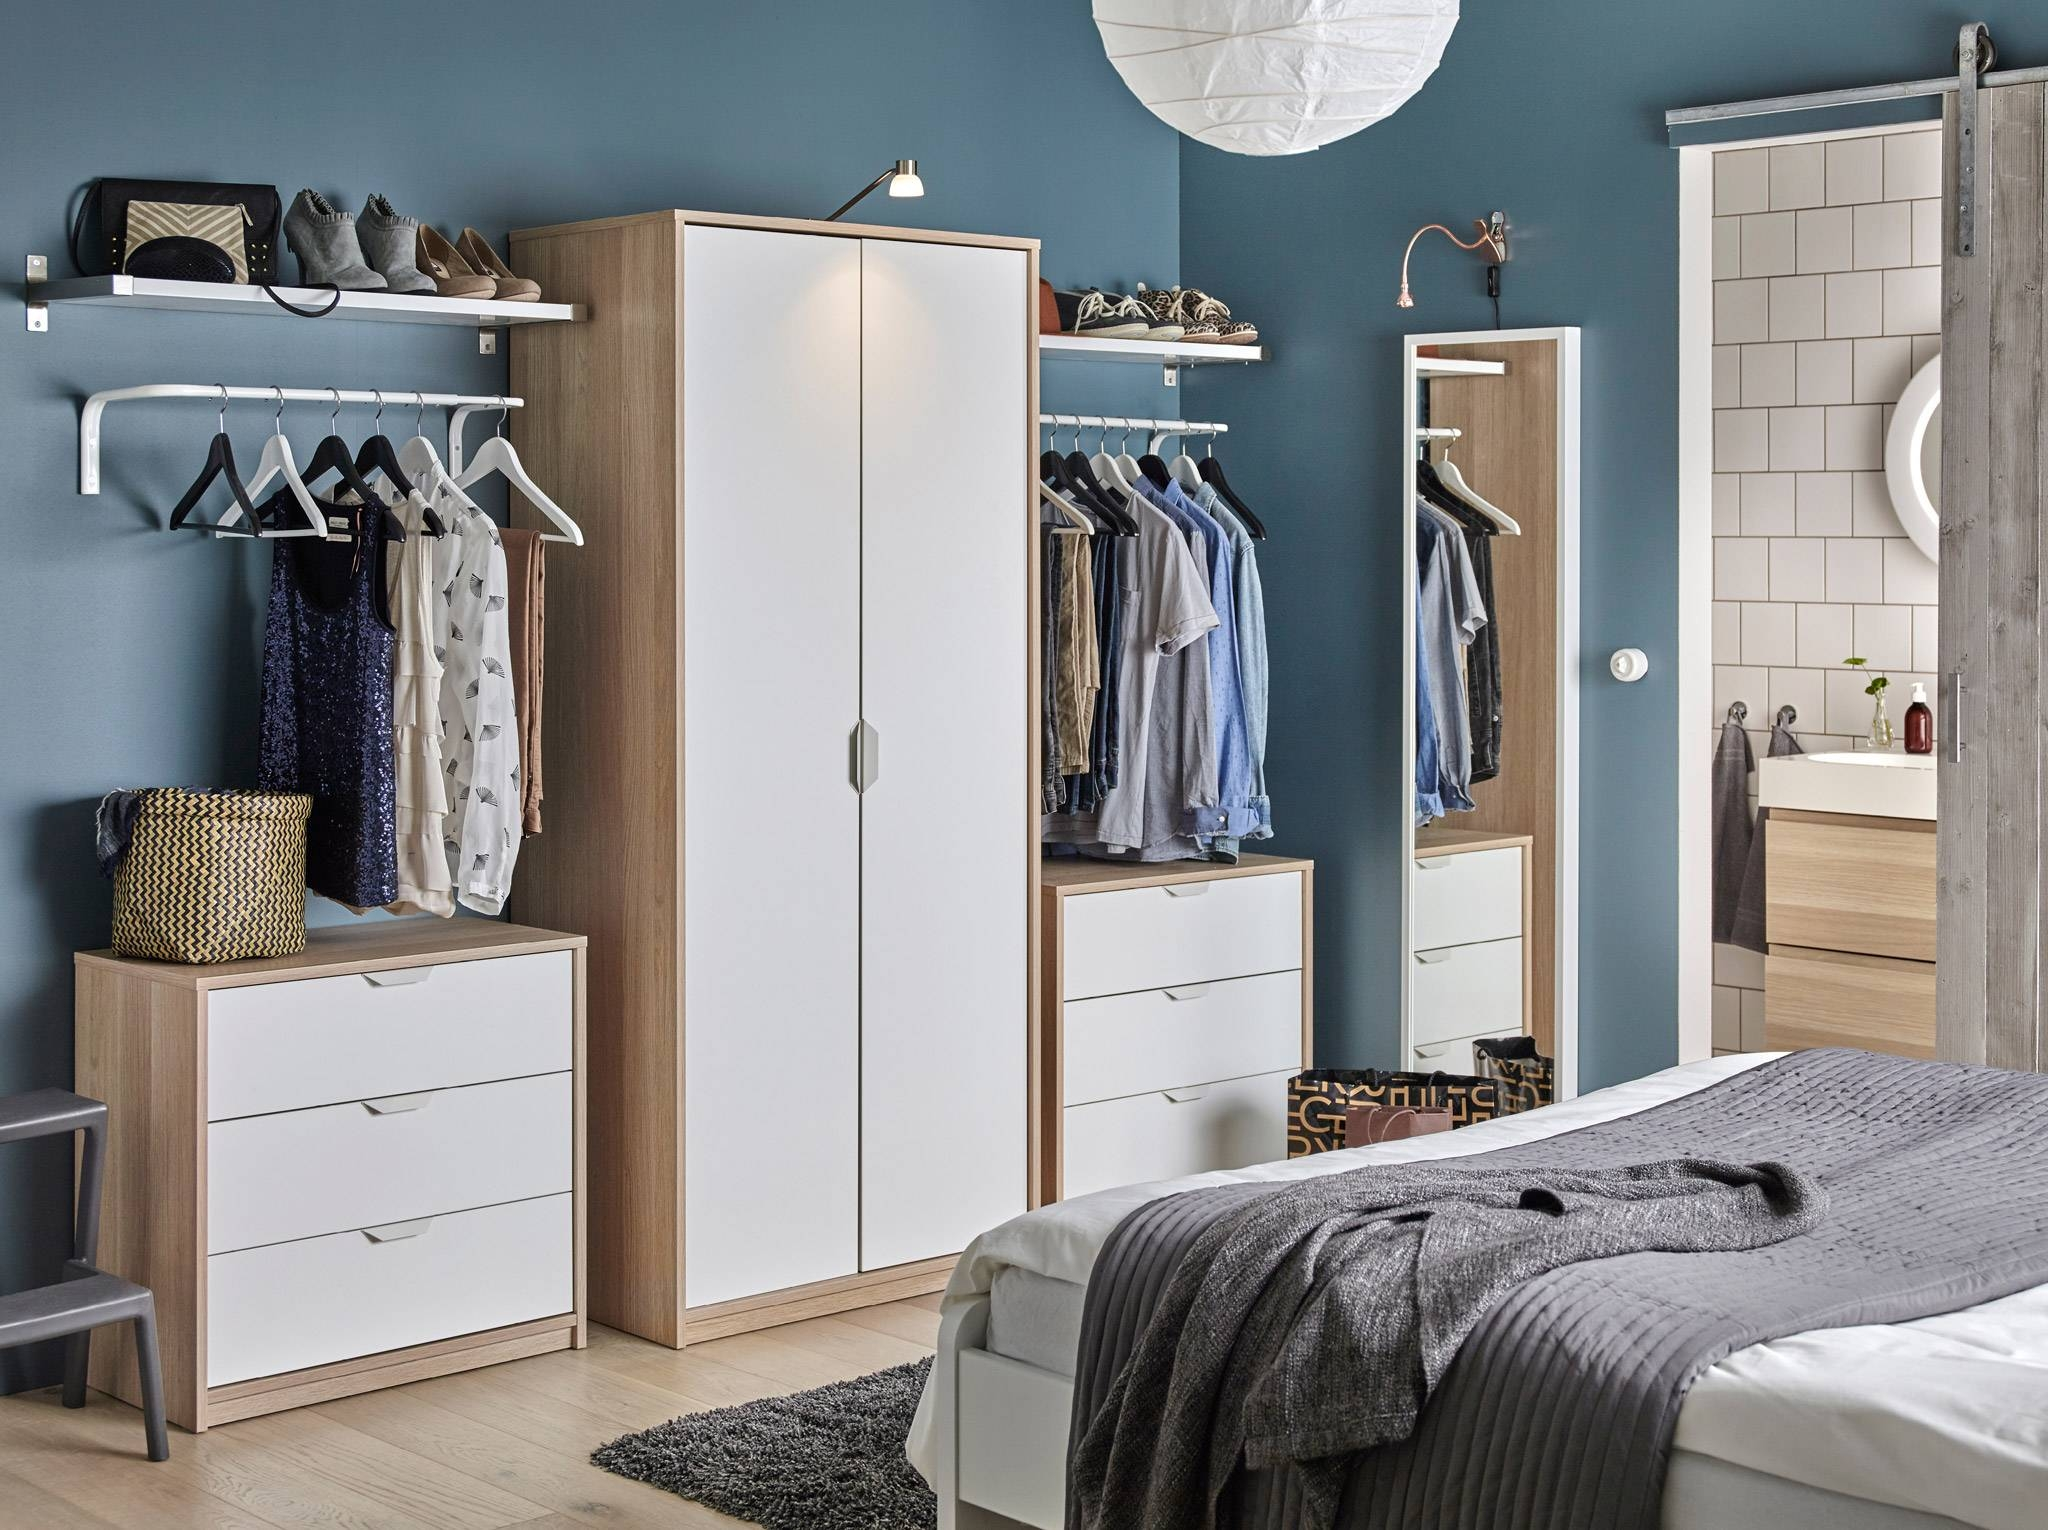 Bedroom Furniture & Ideas | Ikea Inside Wardrobes And Chest Of Drawers Combined (View 11 of 15)